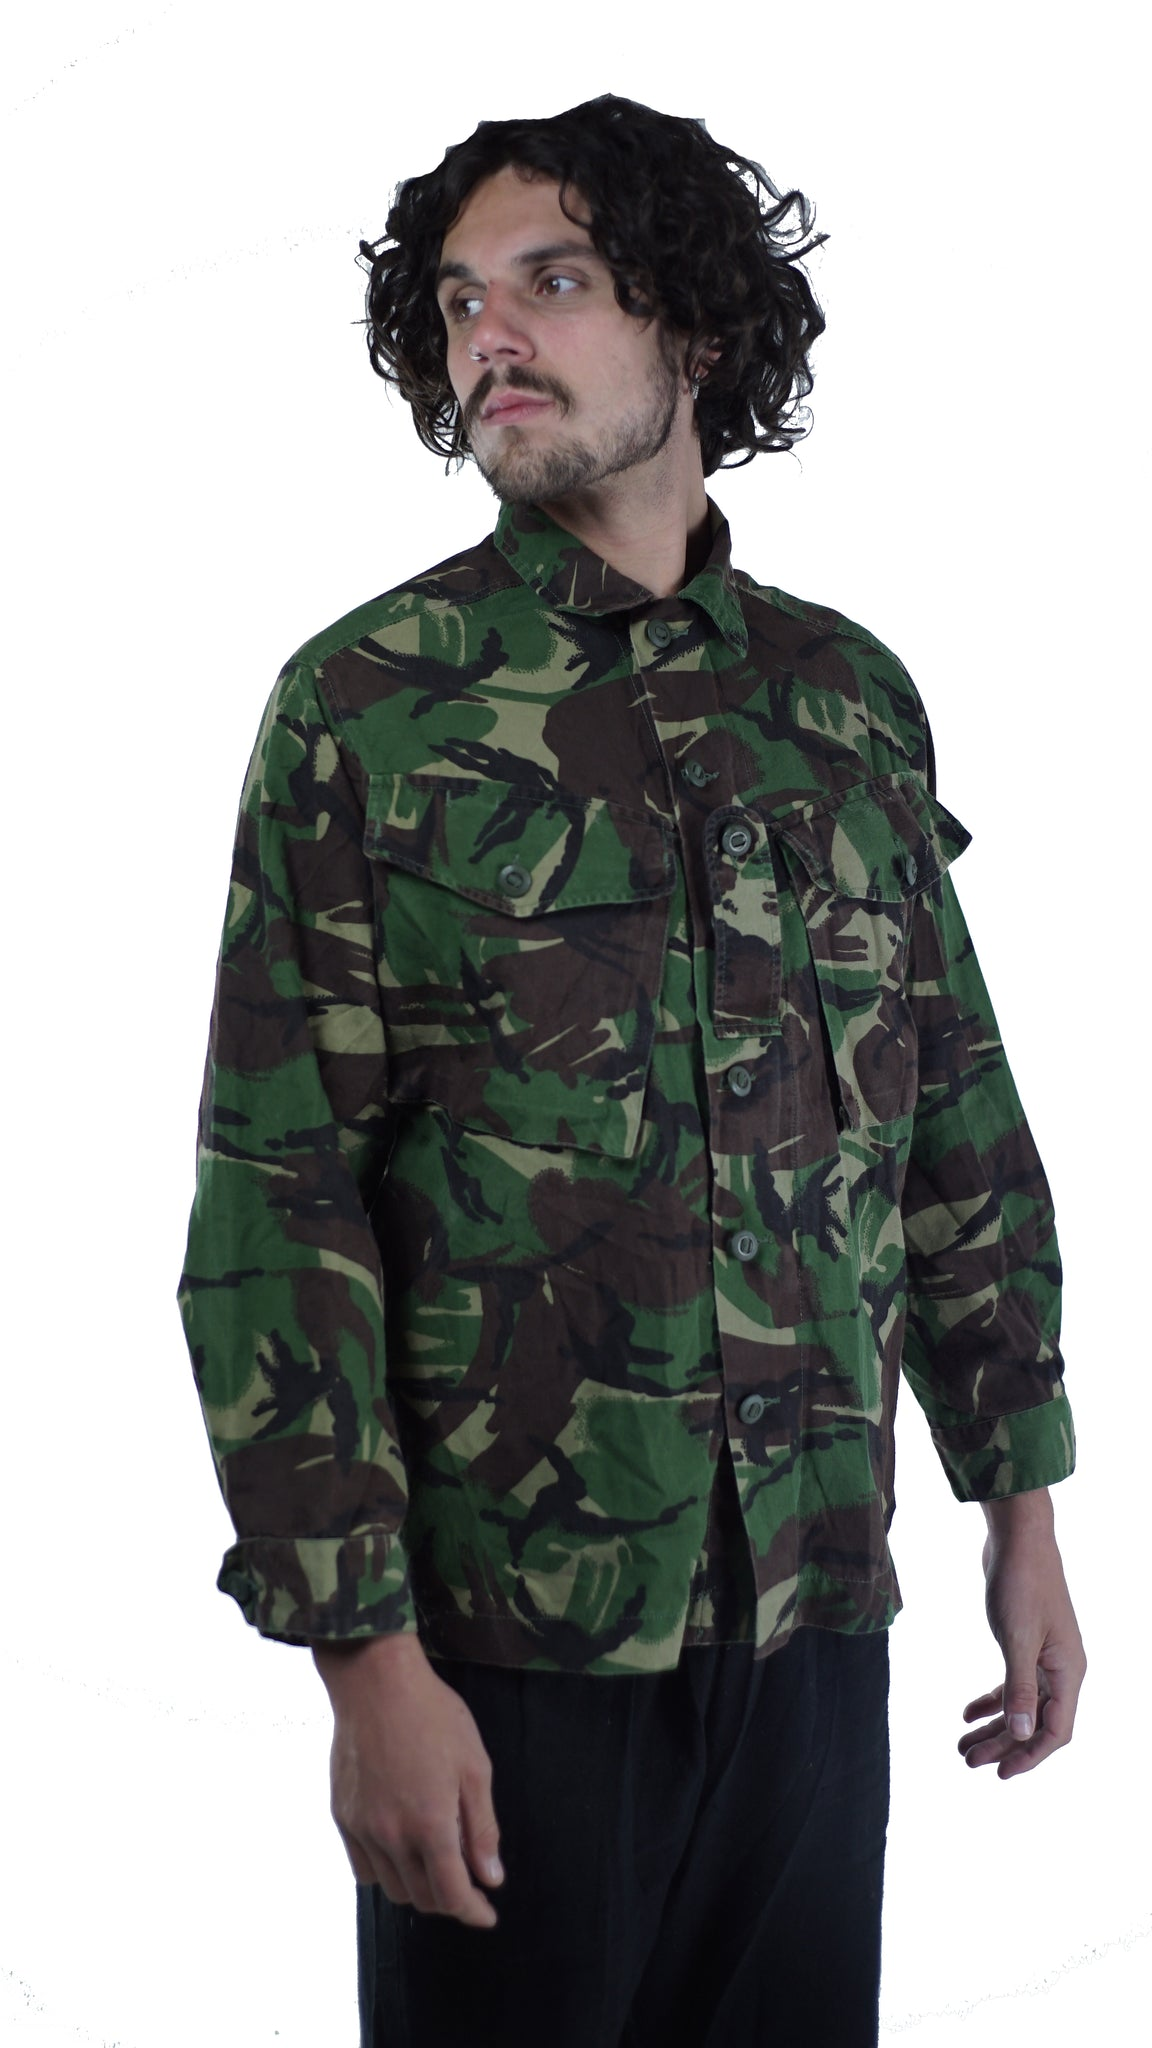 dc0b131aba095 British Army Woodland Camo Shirt - Soldier 95 | Forces Uniform and Kit